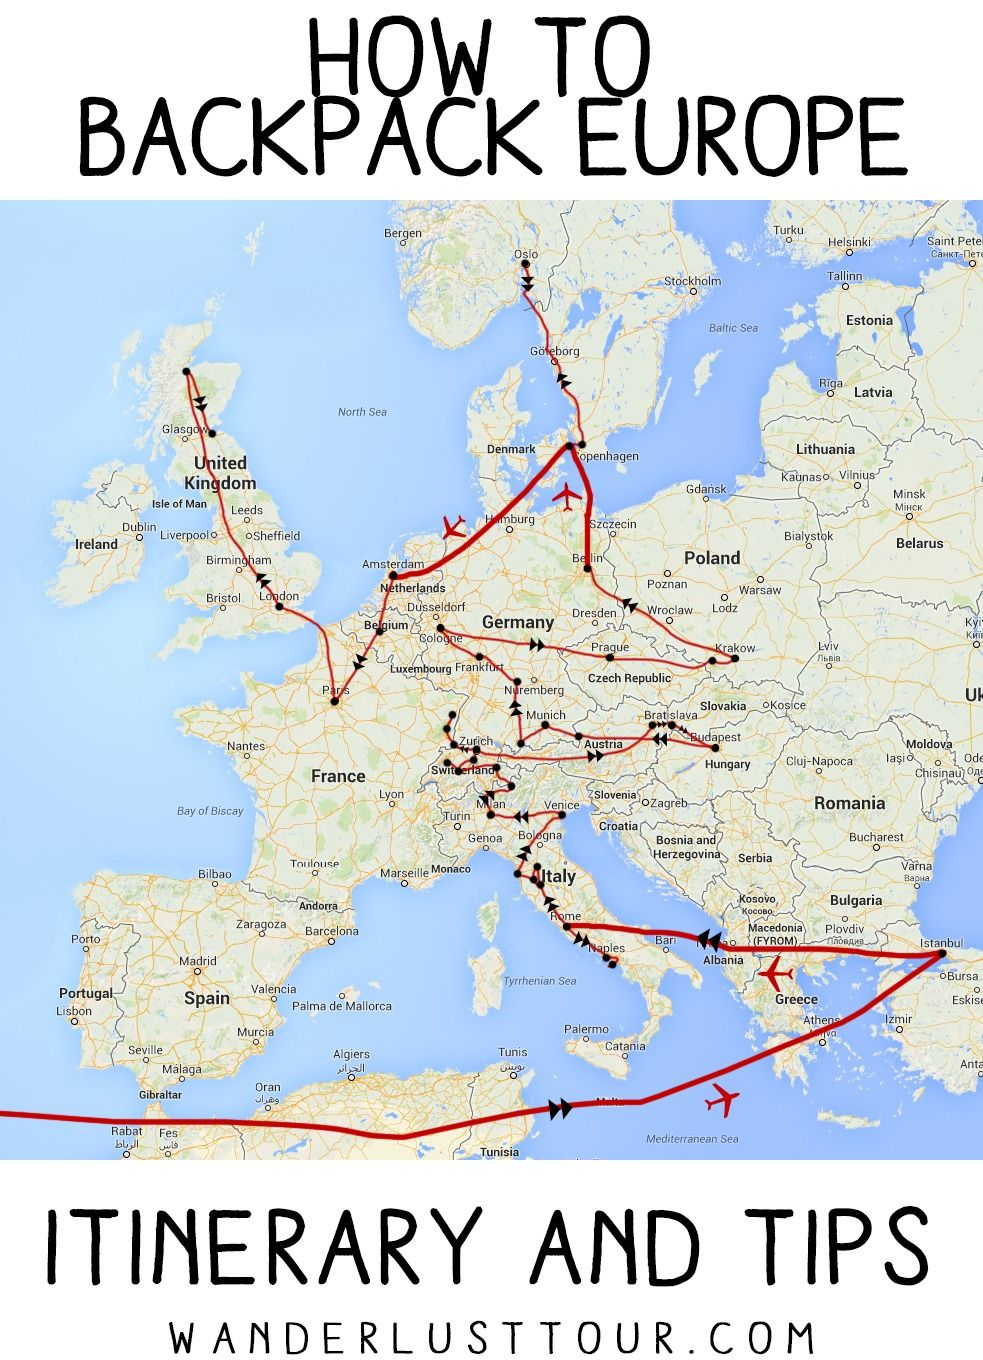 How To Backpack Europe Here is my new, updated itinerary